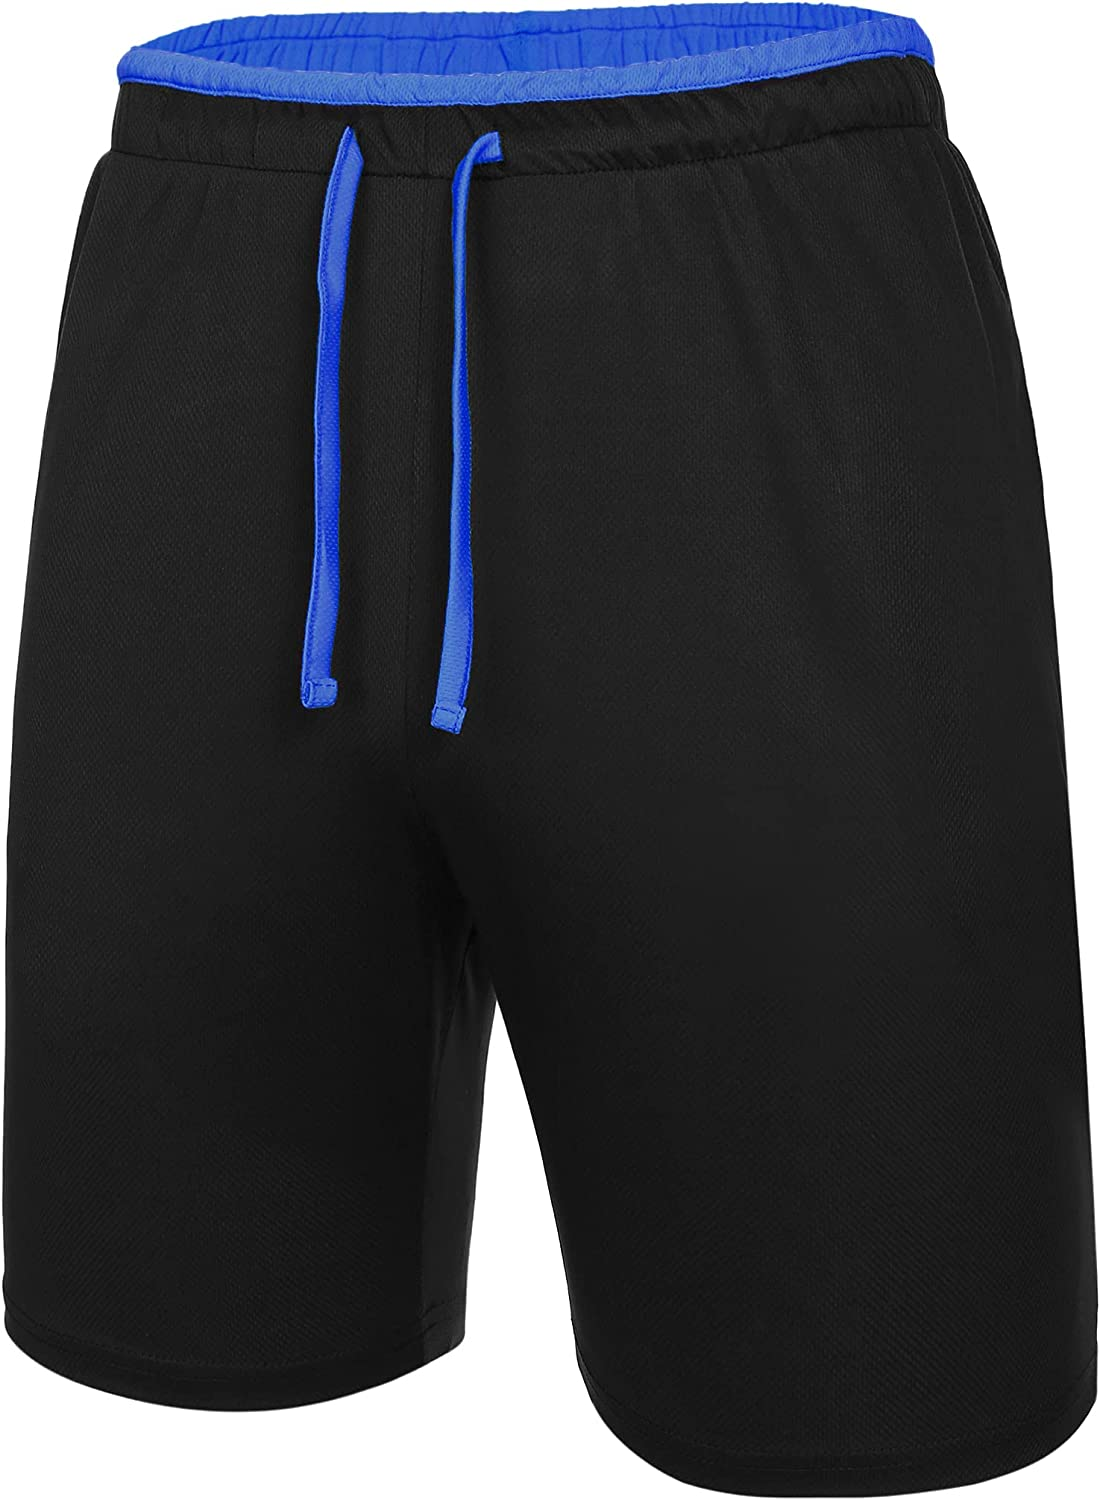 Deyeek Men's Mesh Running At the price of surprise Shorts with Pockets Manufacturer OFFicial shop Lightweight Quick